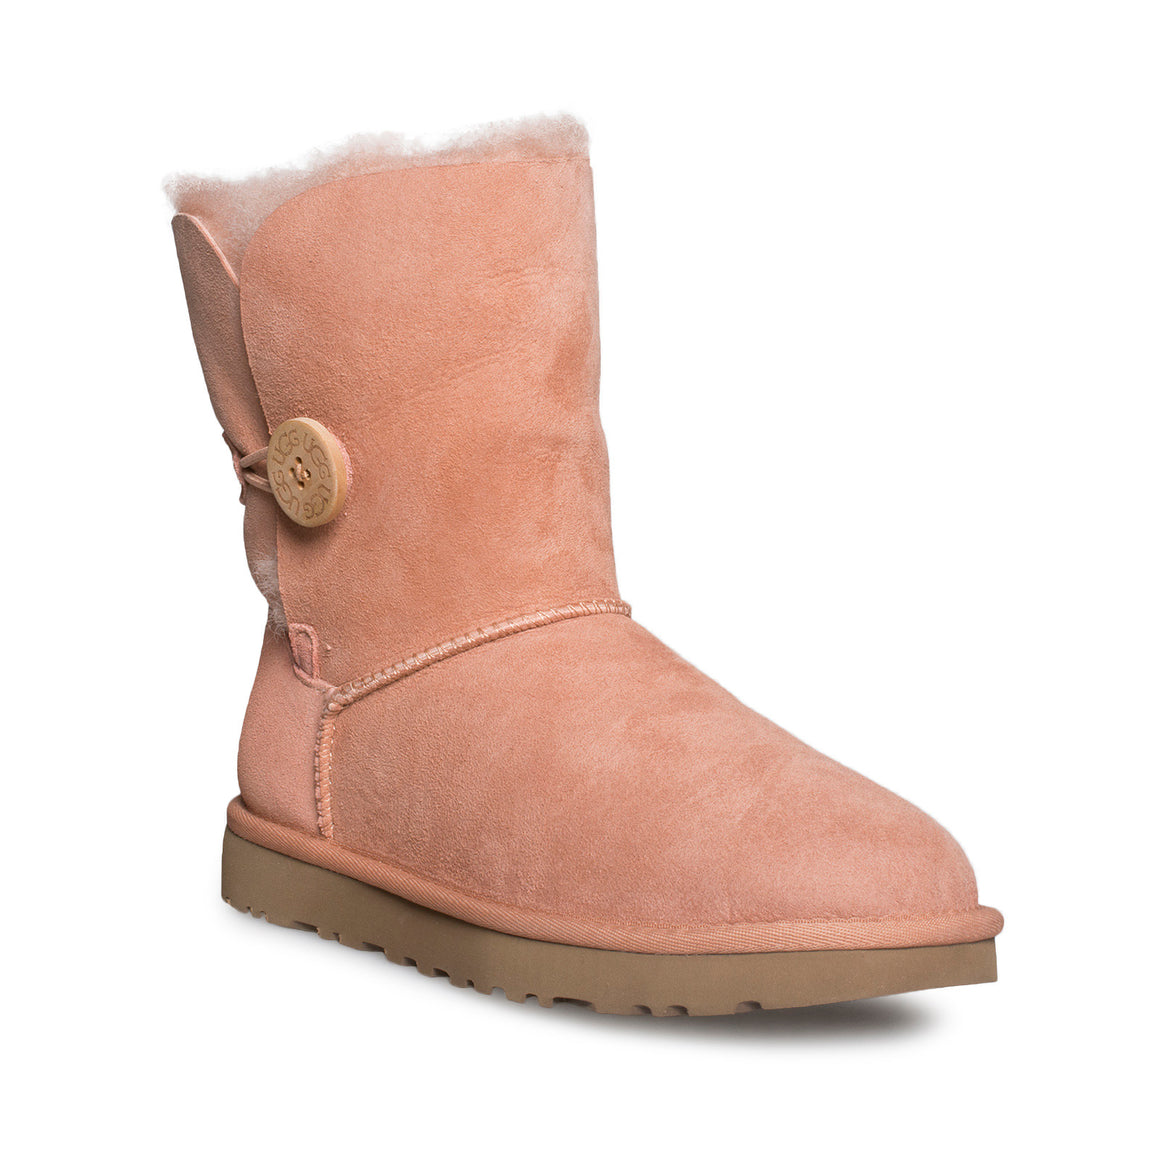 UGG Bailey Button II Suntan Boots - Women's